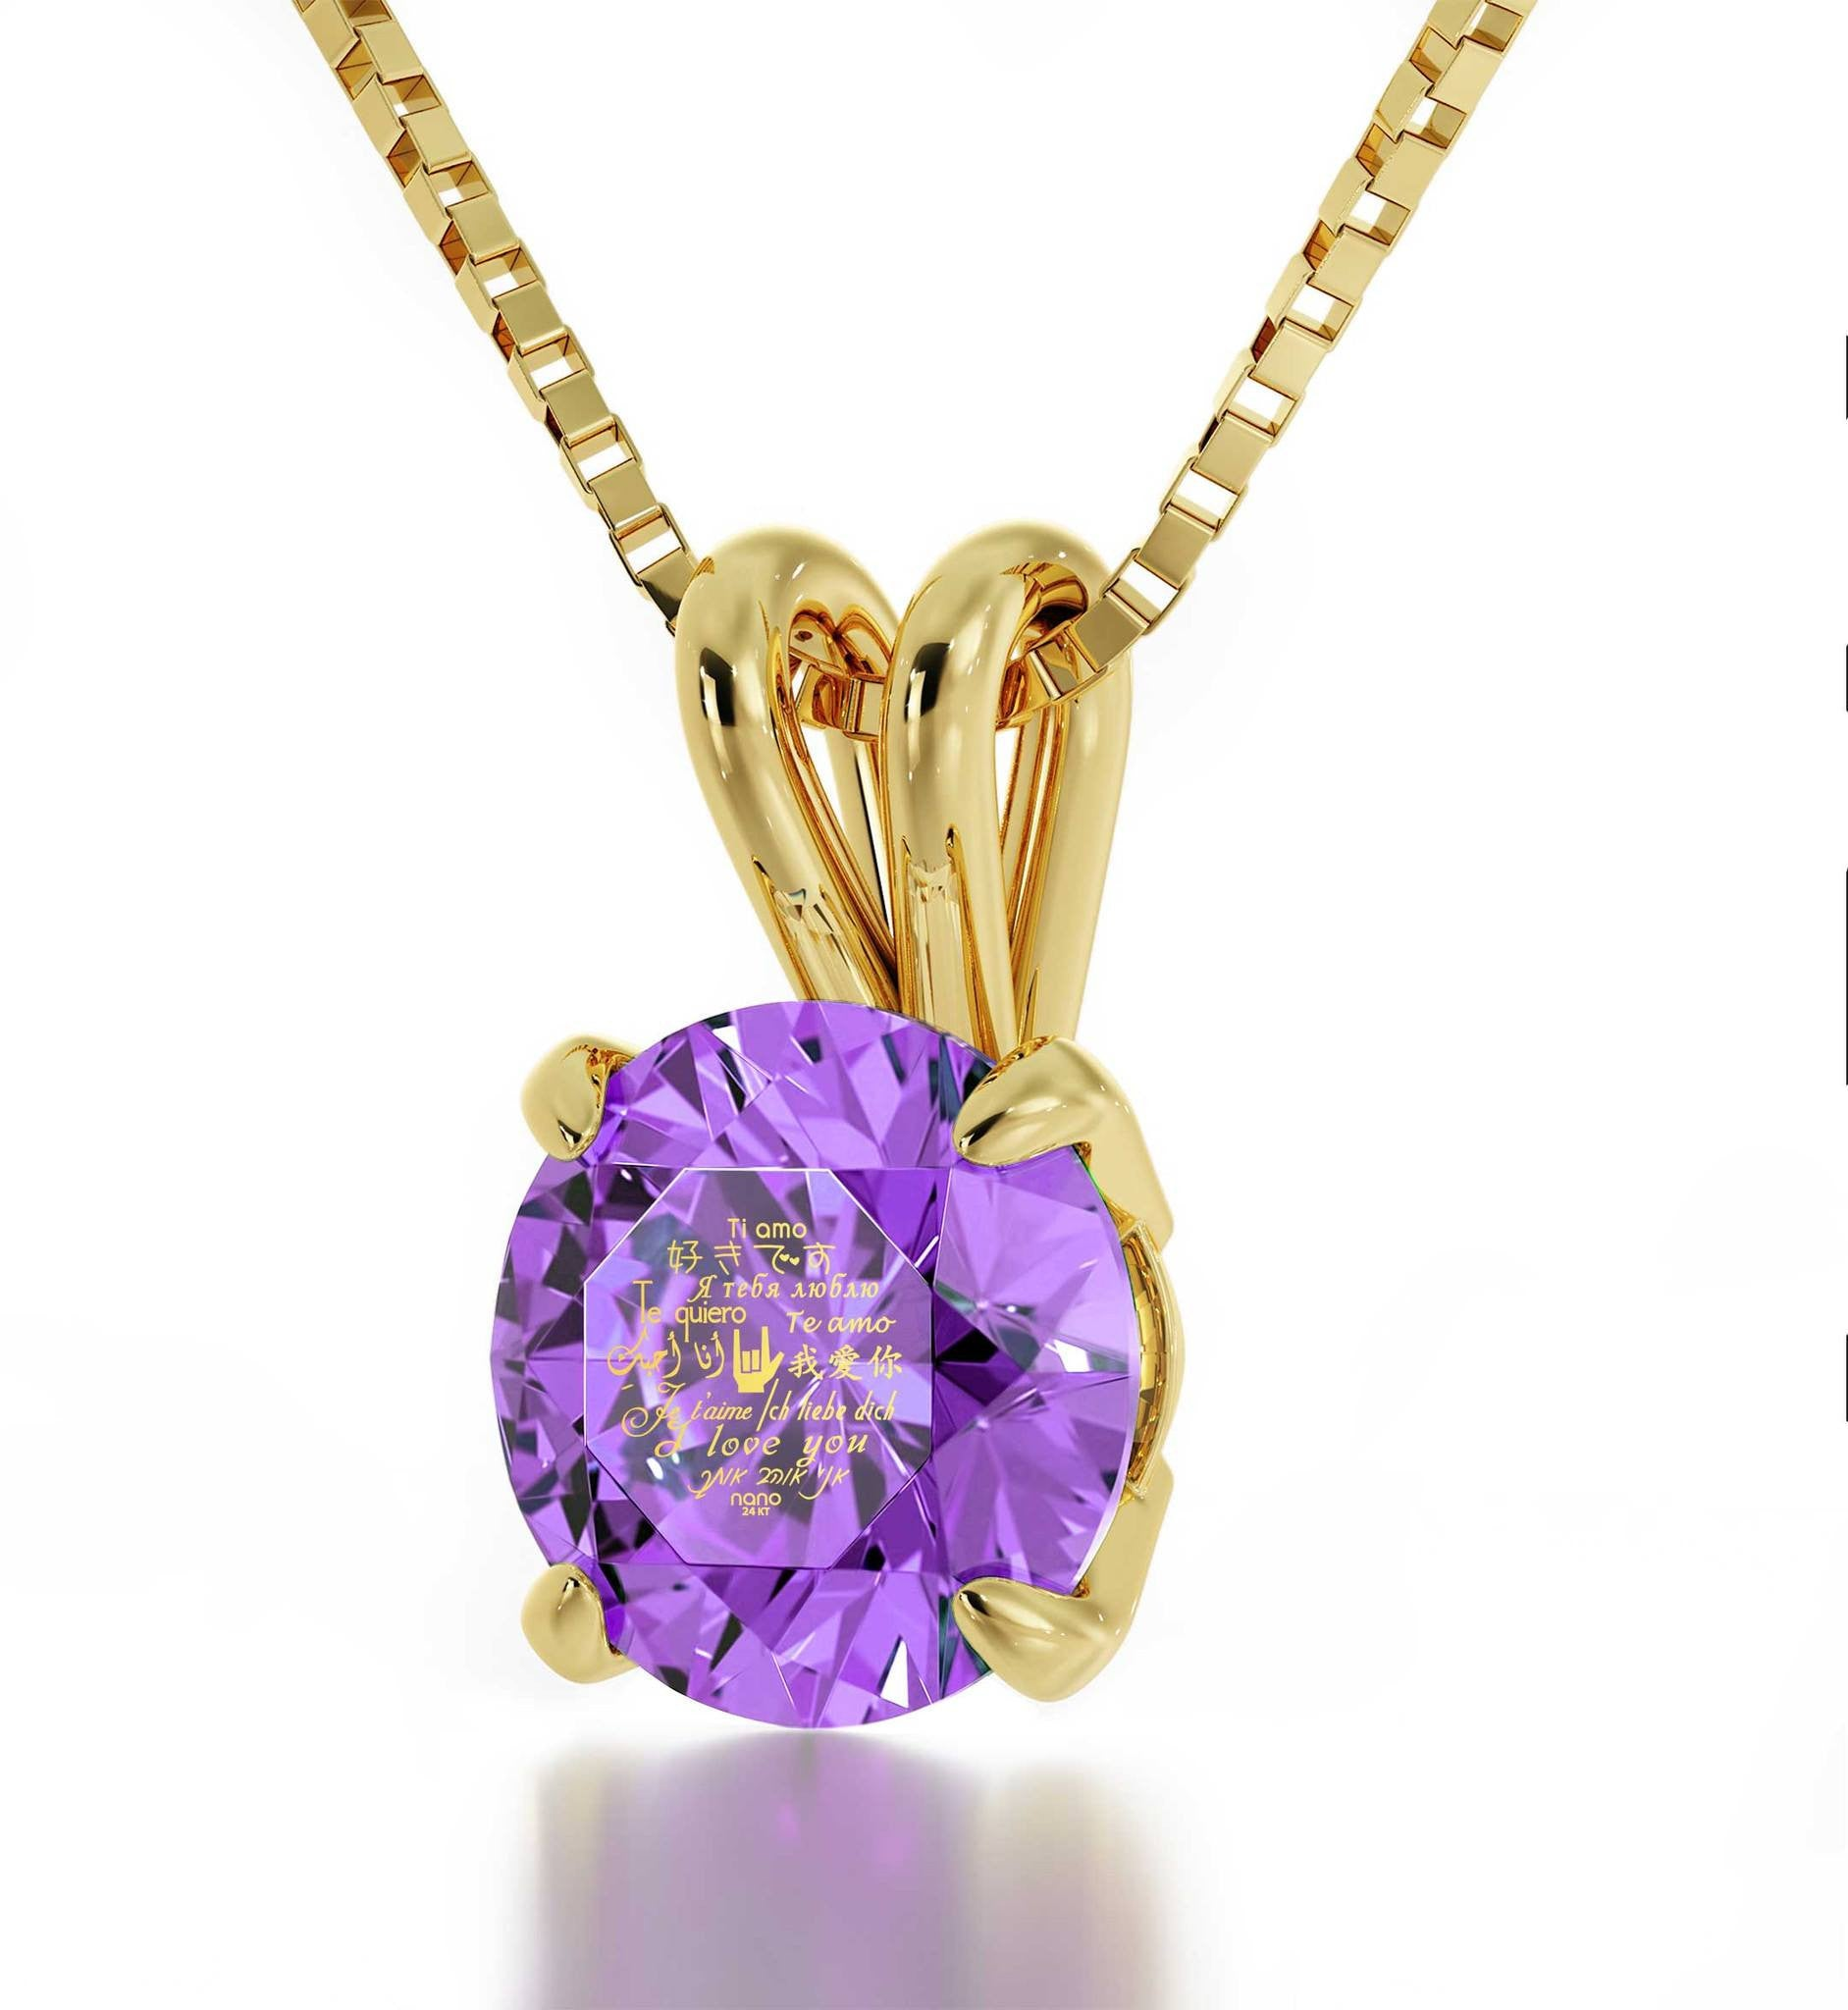 rain setting pacific stones copy products of pink necklace chain purple center power stone silver in adjustable flower white mariana opal